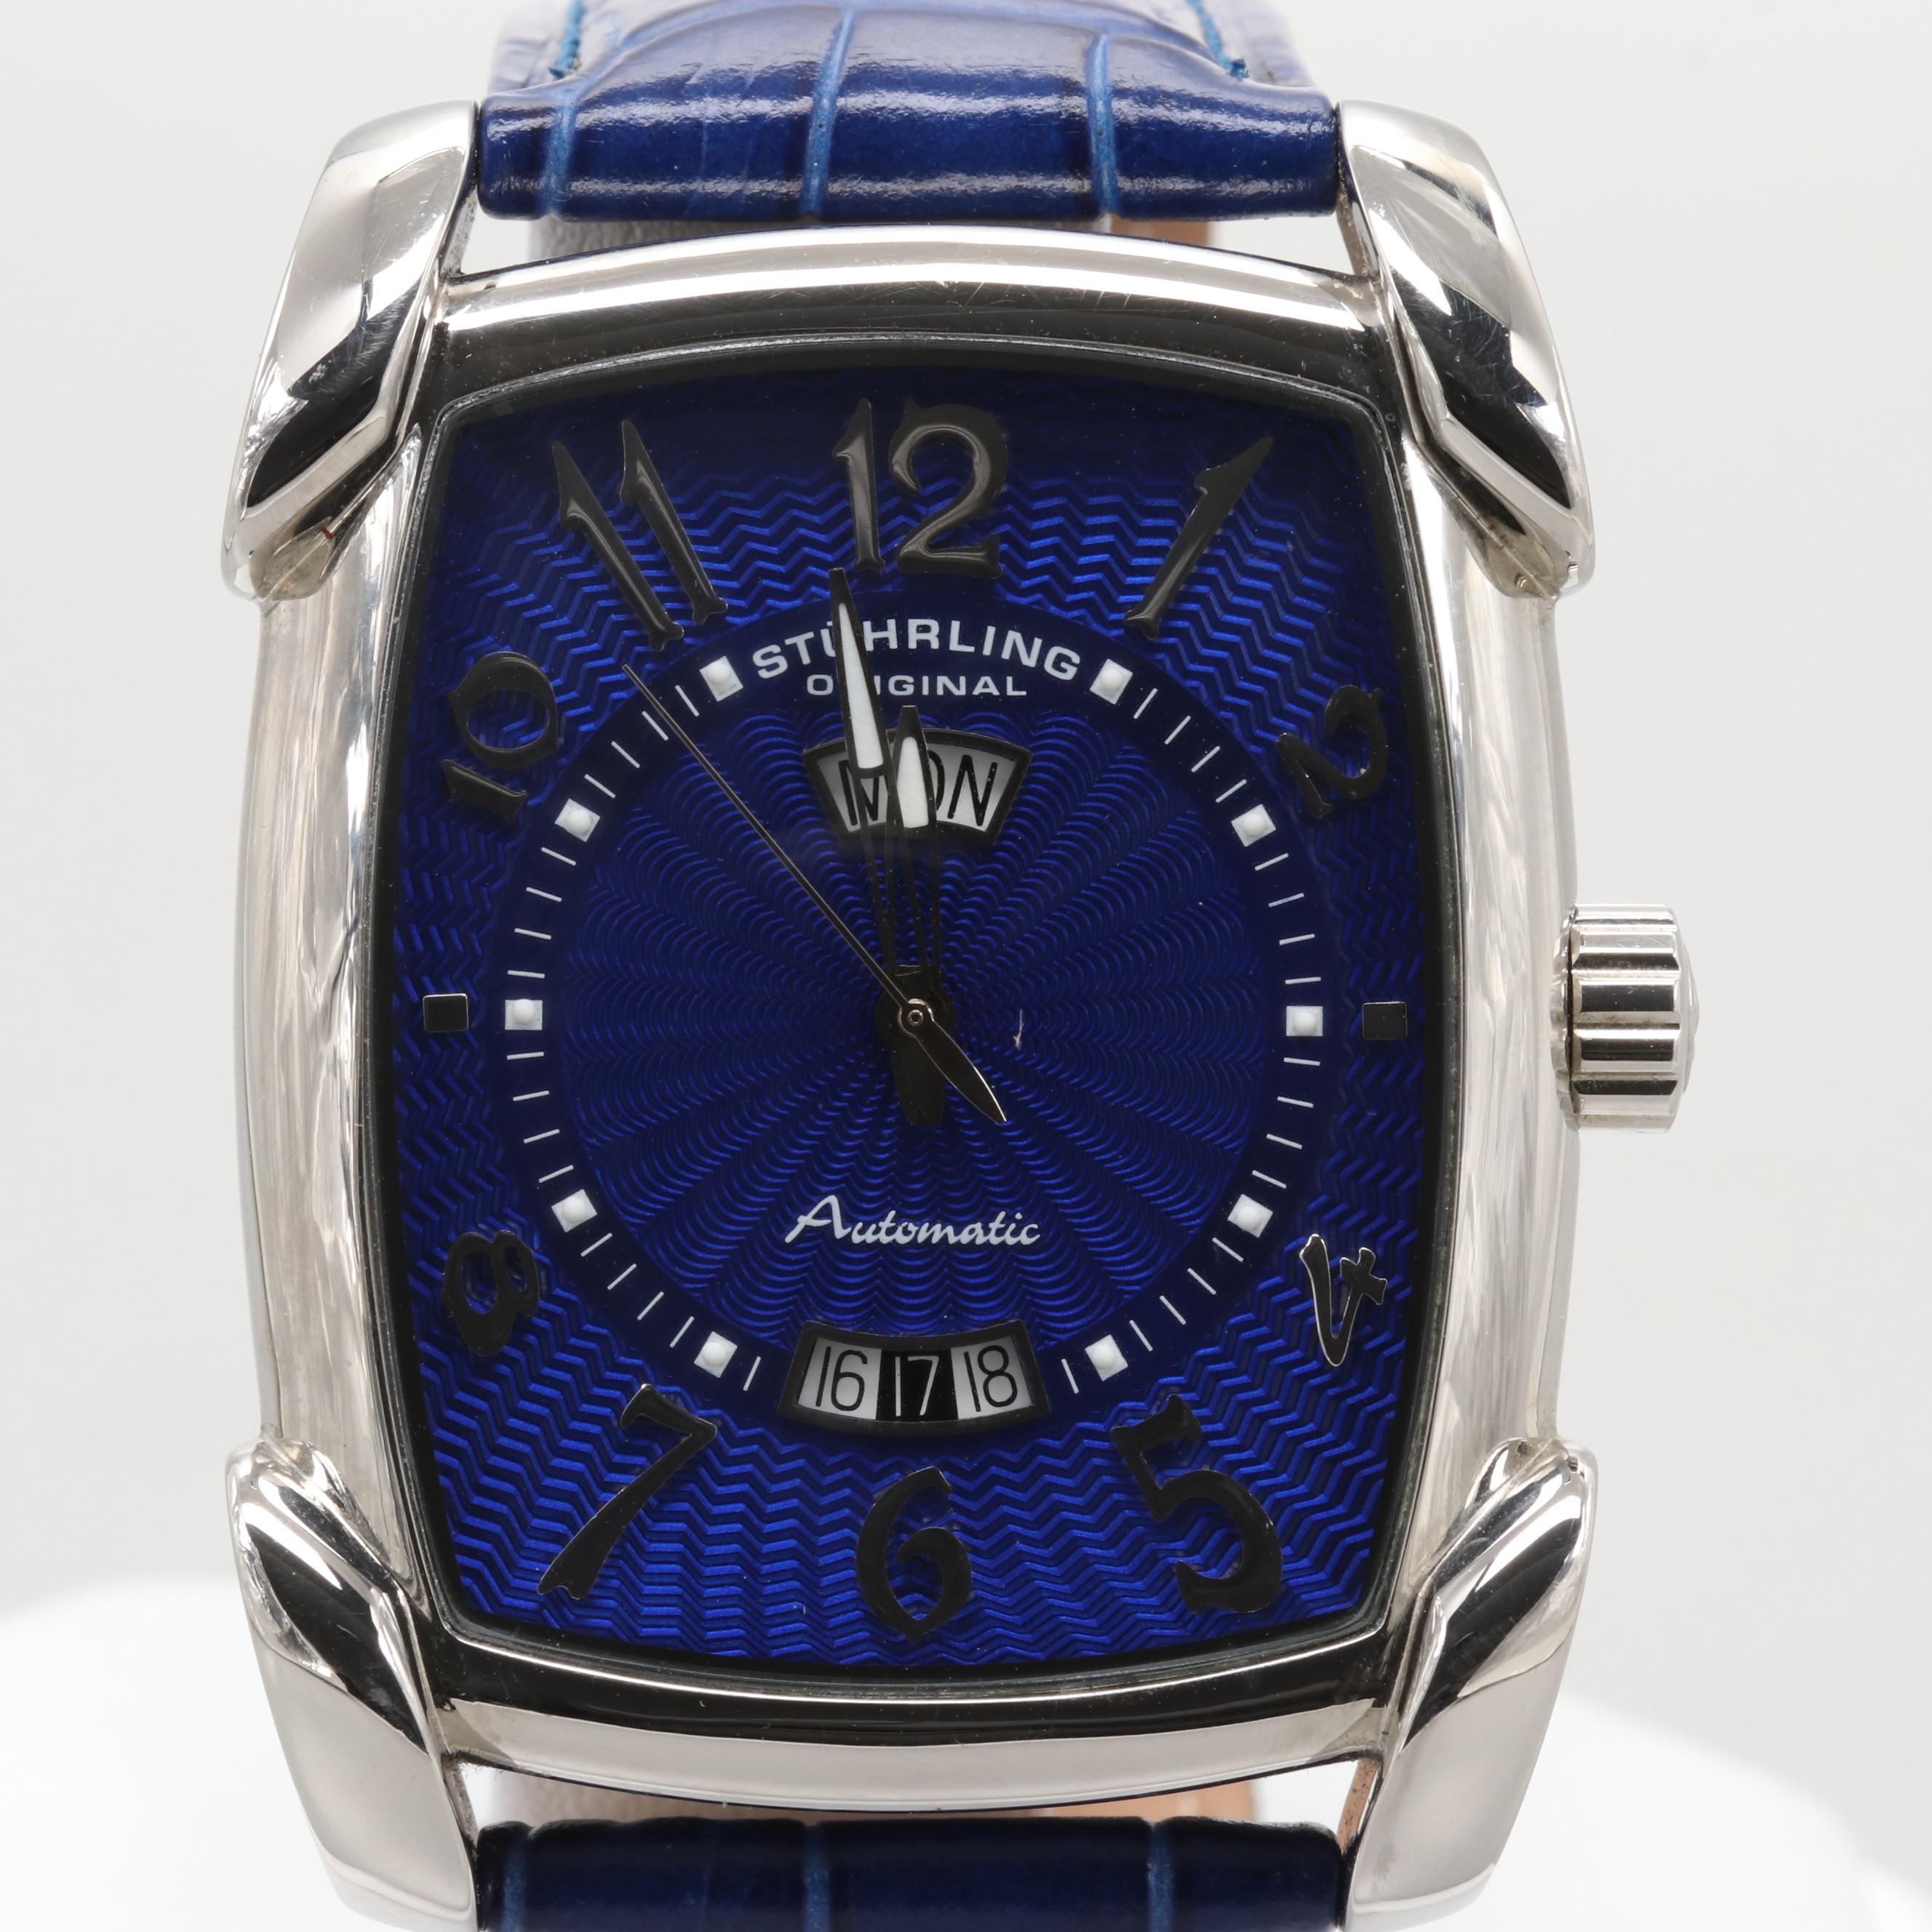 Stuhriling Classic Metropolis Madison Avenue Wristwatch with Day and Date Window